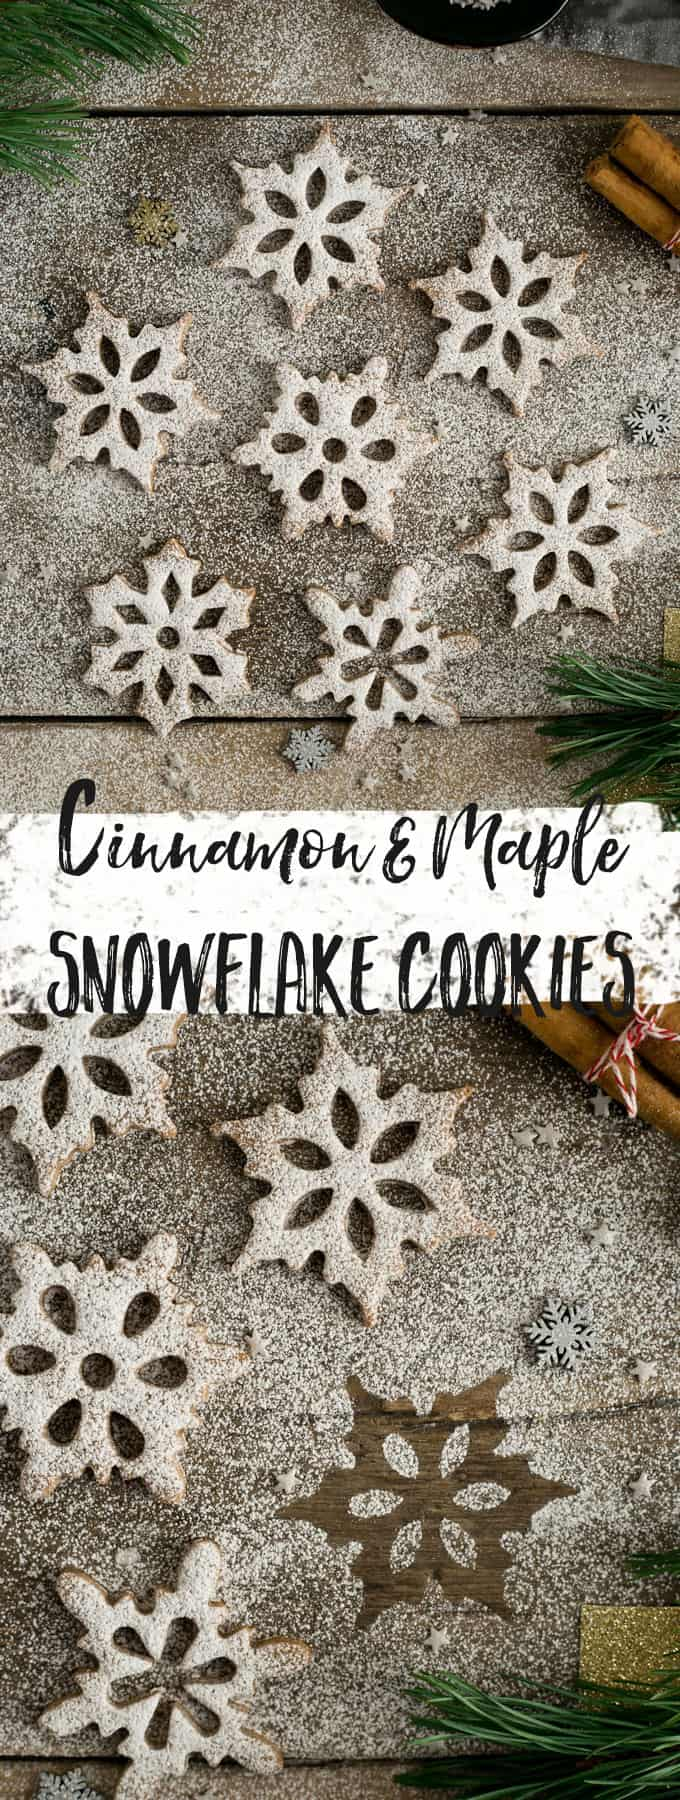 Delicious and festive cinnamon and maple snowflake cookies! #cookies #vegan #Christmas | via @annabanana.co